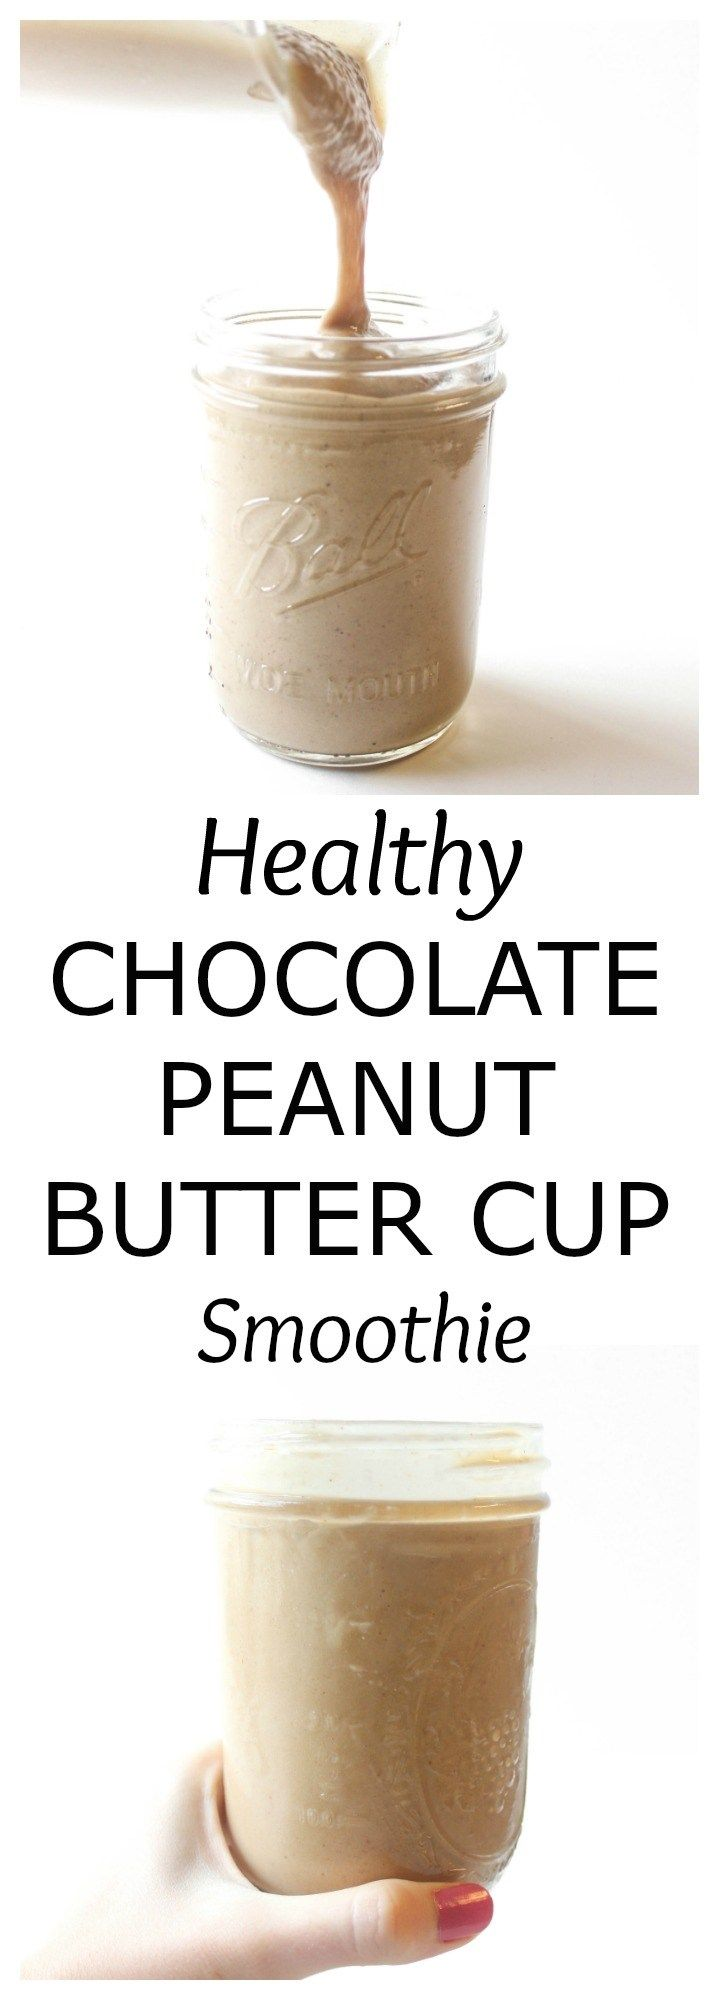 Chocolate Peanut Butter Cup Protein Smoothie | Recipe | Peanut butter ...